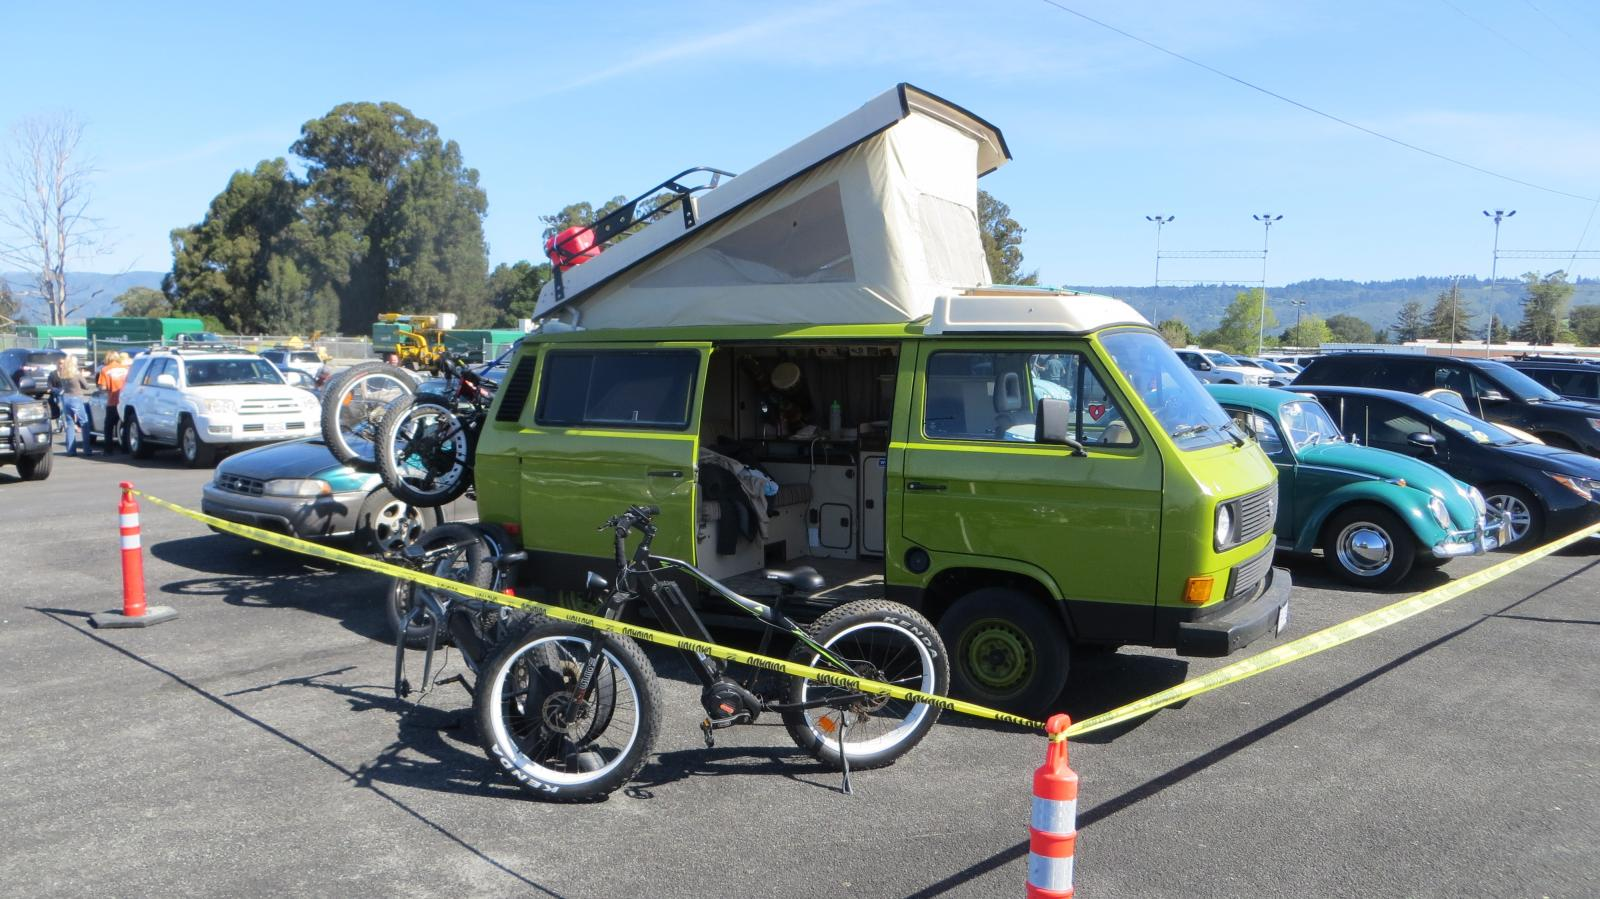 Vanagon Photos from Red Barn 2019 (Sat. April 13th, 2019)